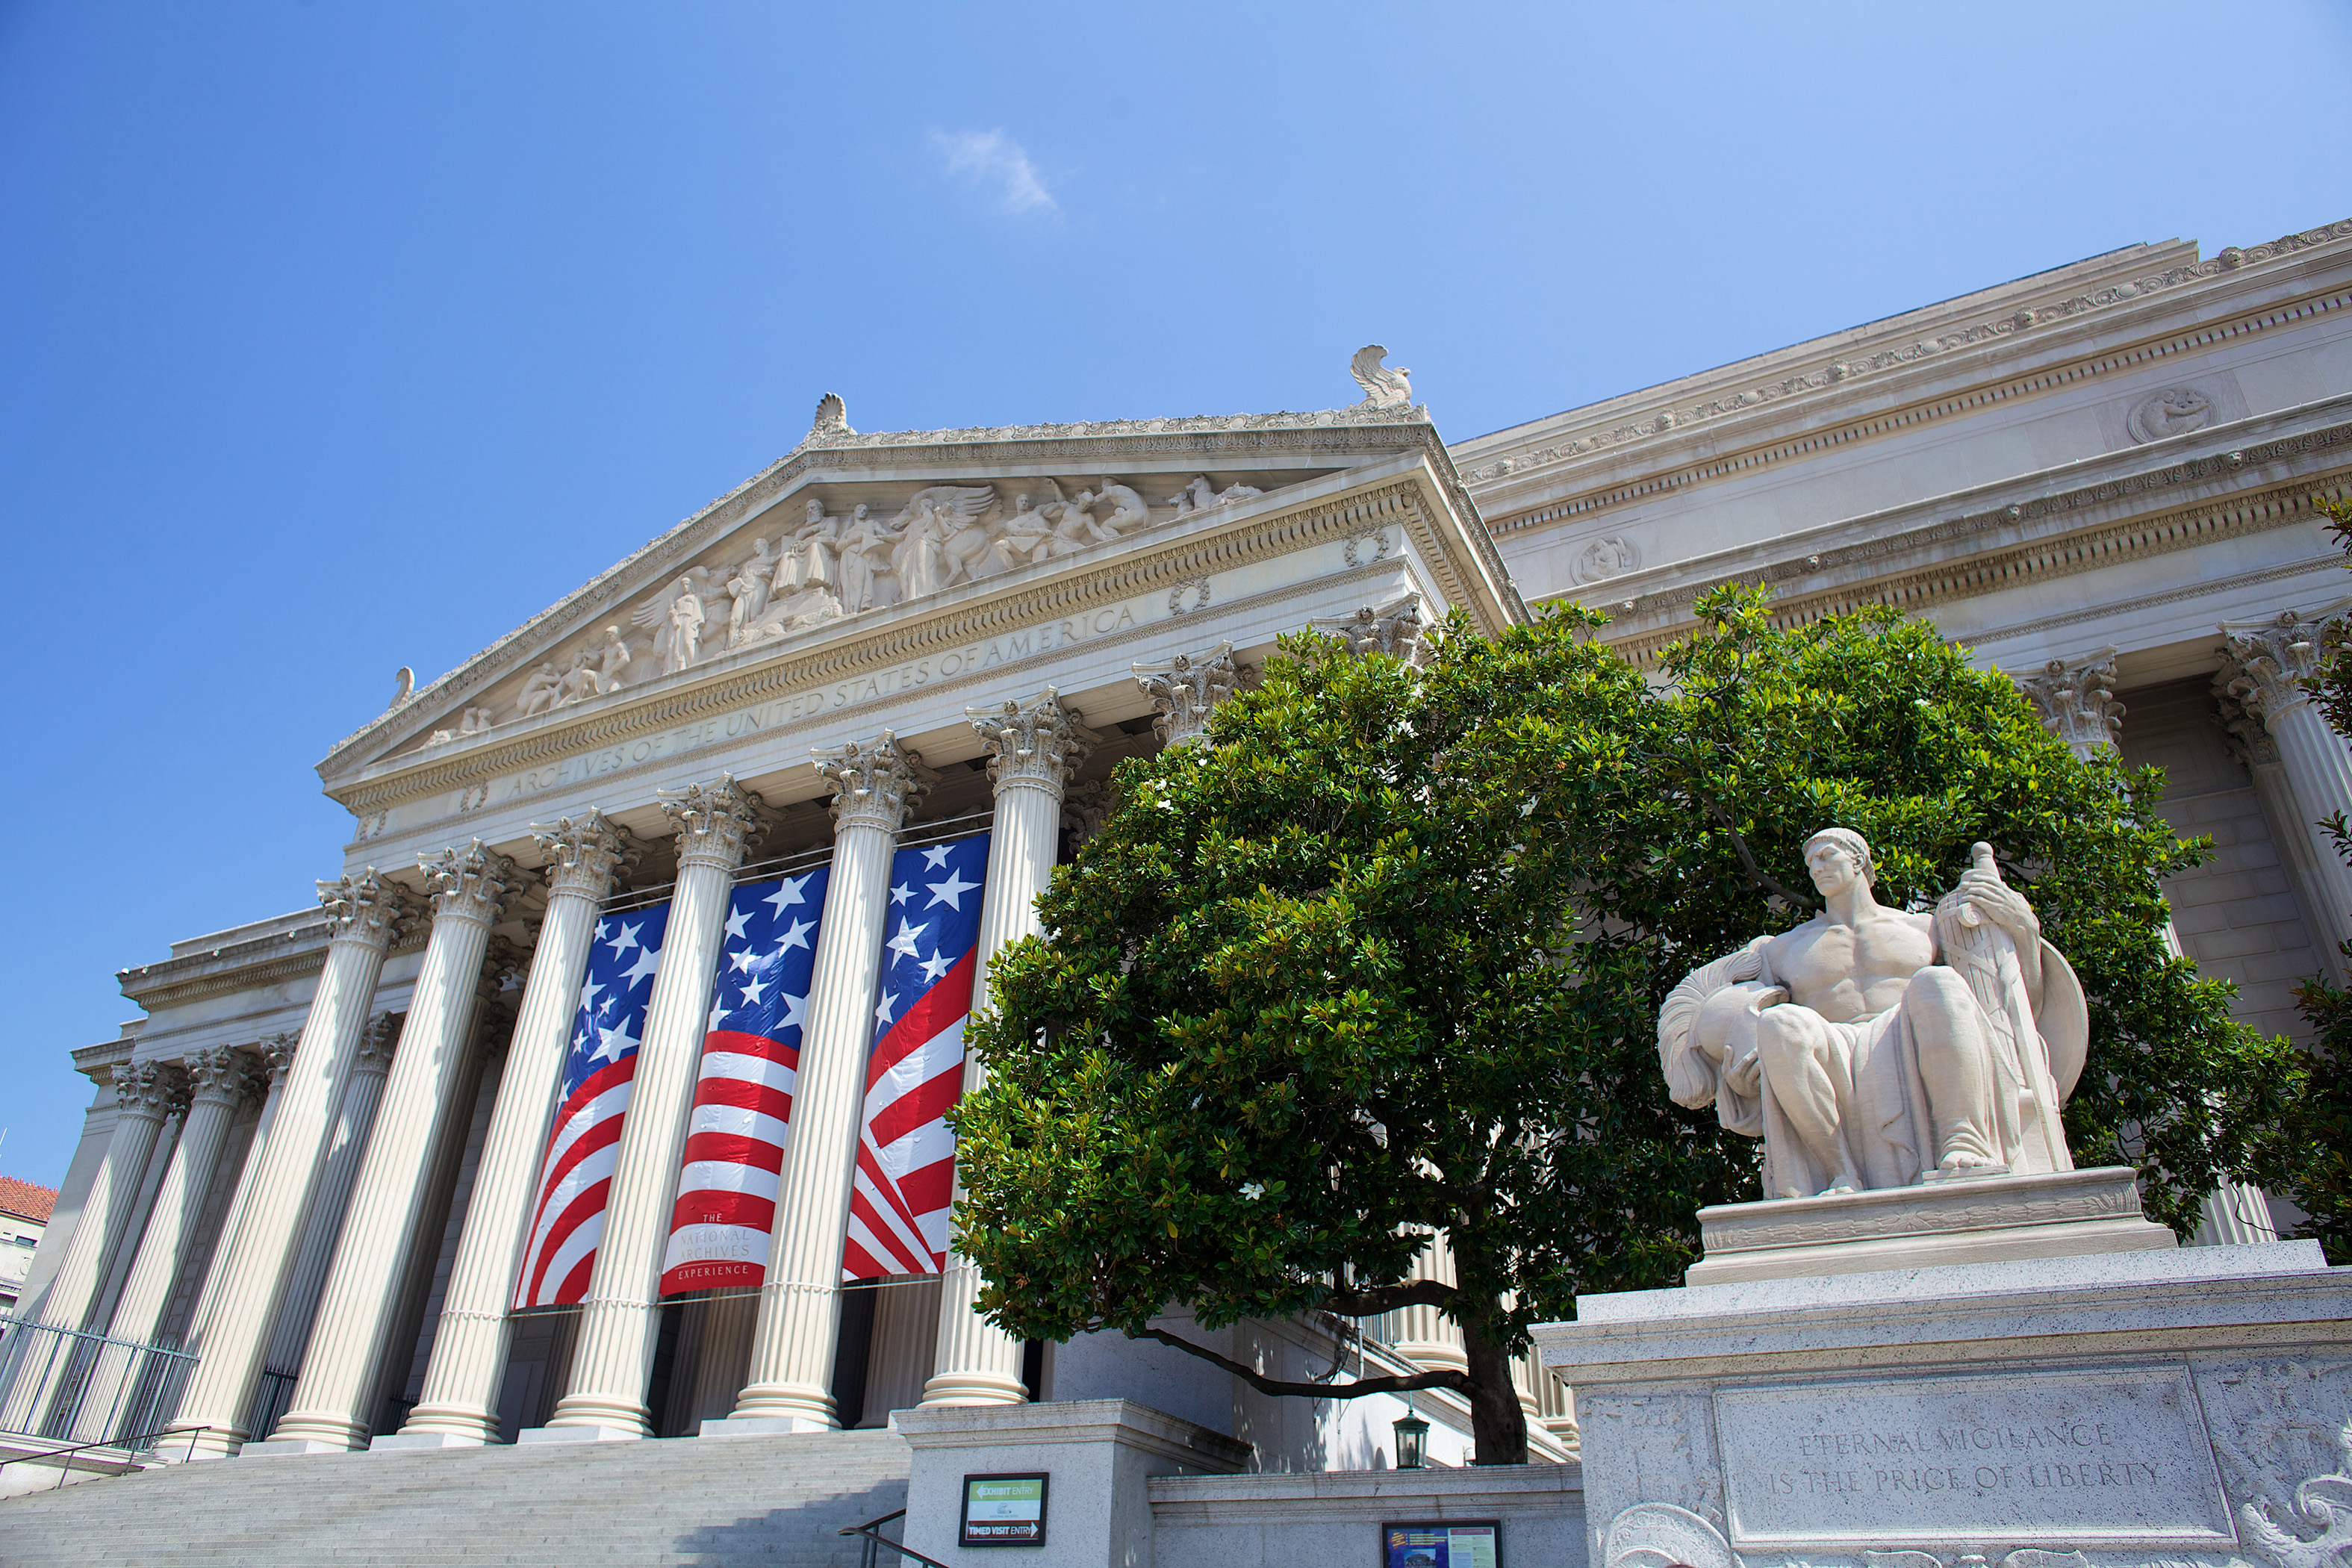 Photograph of the National Archives Building Constitution Avenue Entrance showing the annual Independence Day celebration banners (also shown is the statue Guardianship by James Earle Fraser), 2014. (Photograph by Jeff Reed, National Archives)